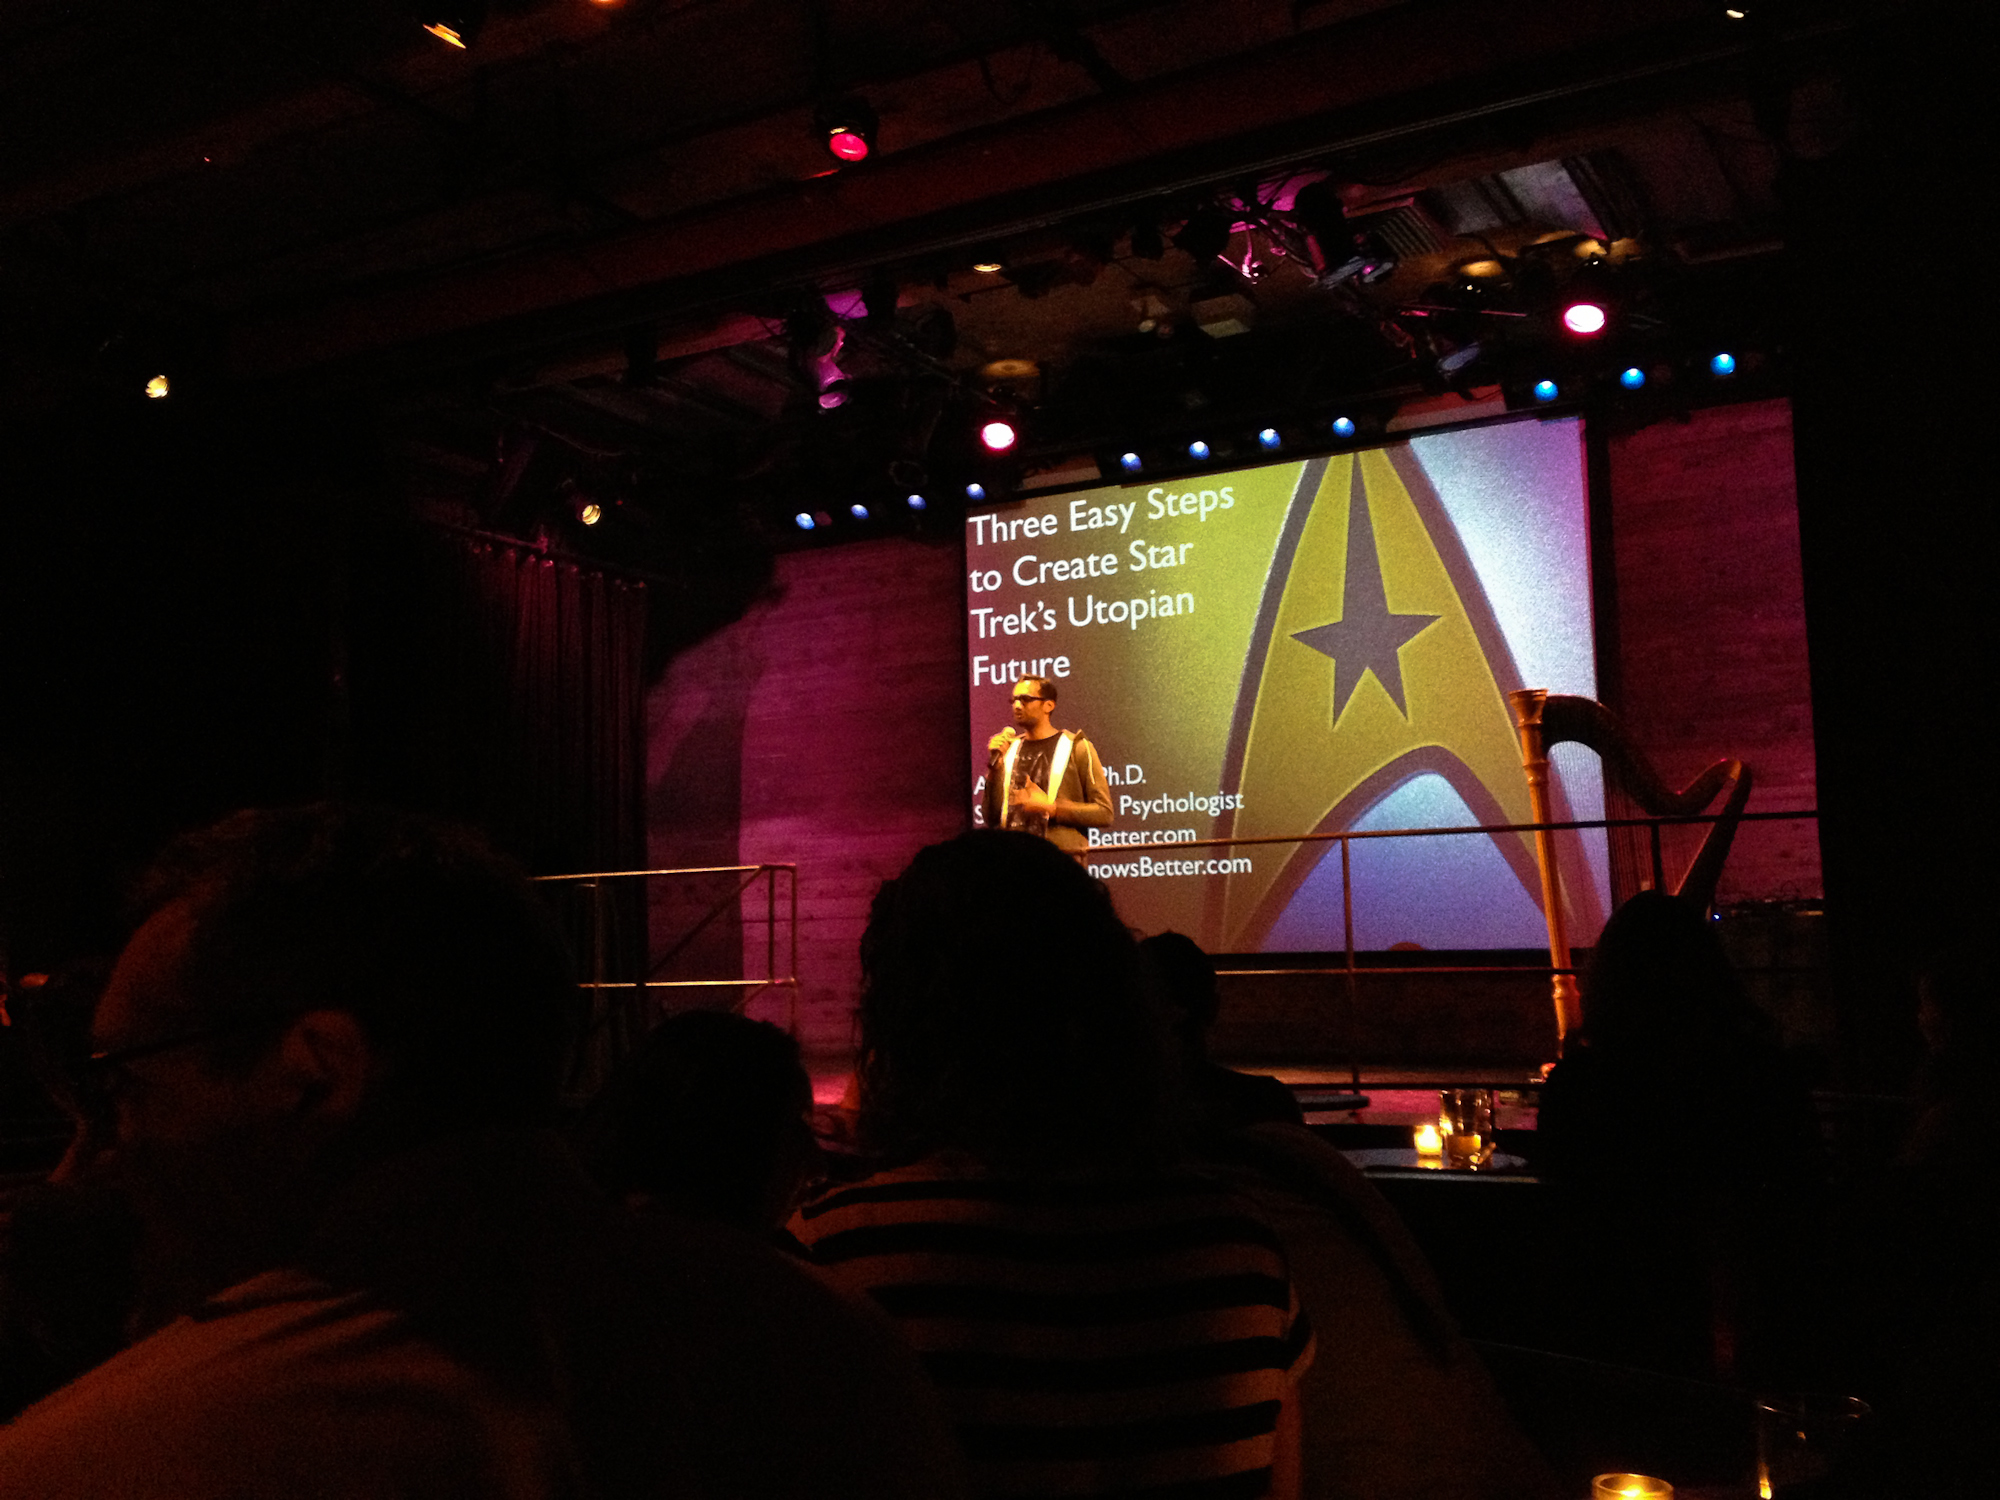 My Nerd Nite talk - 3 Easy Steps to Create Star Trek's Utopian Future